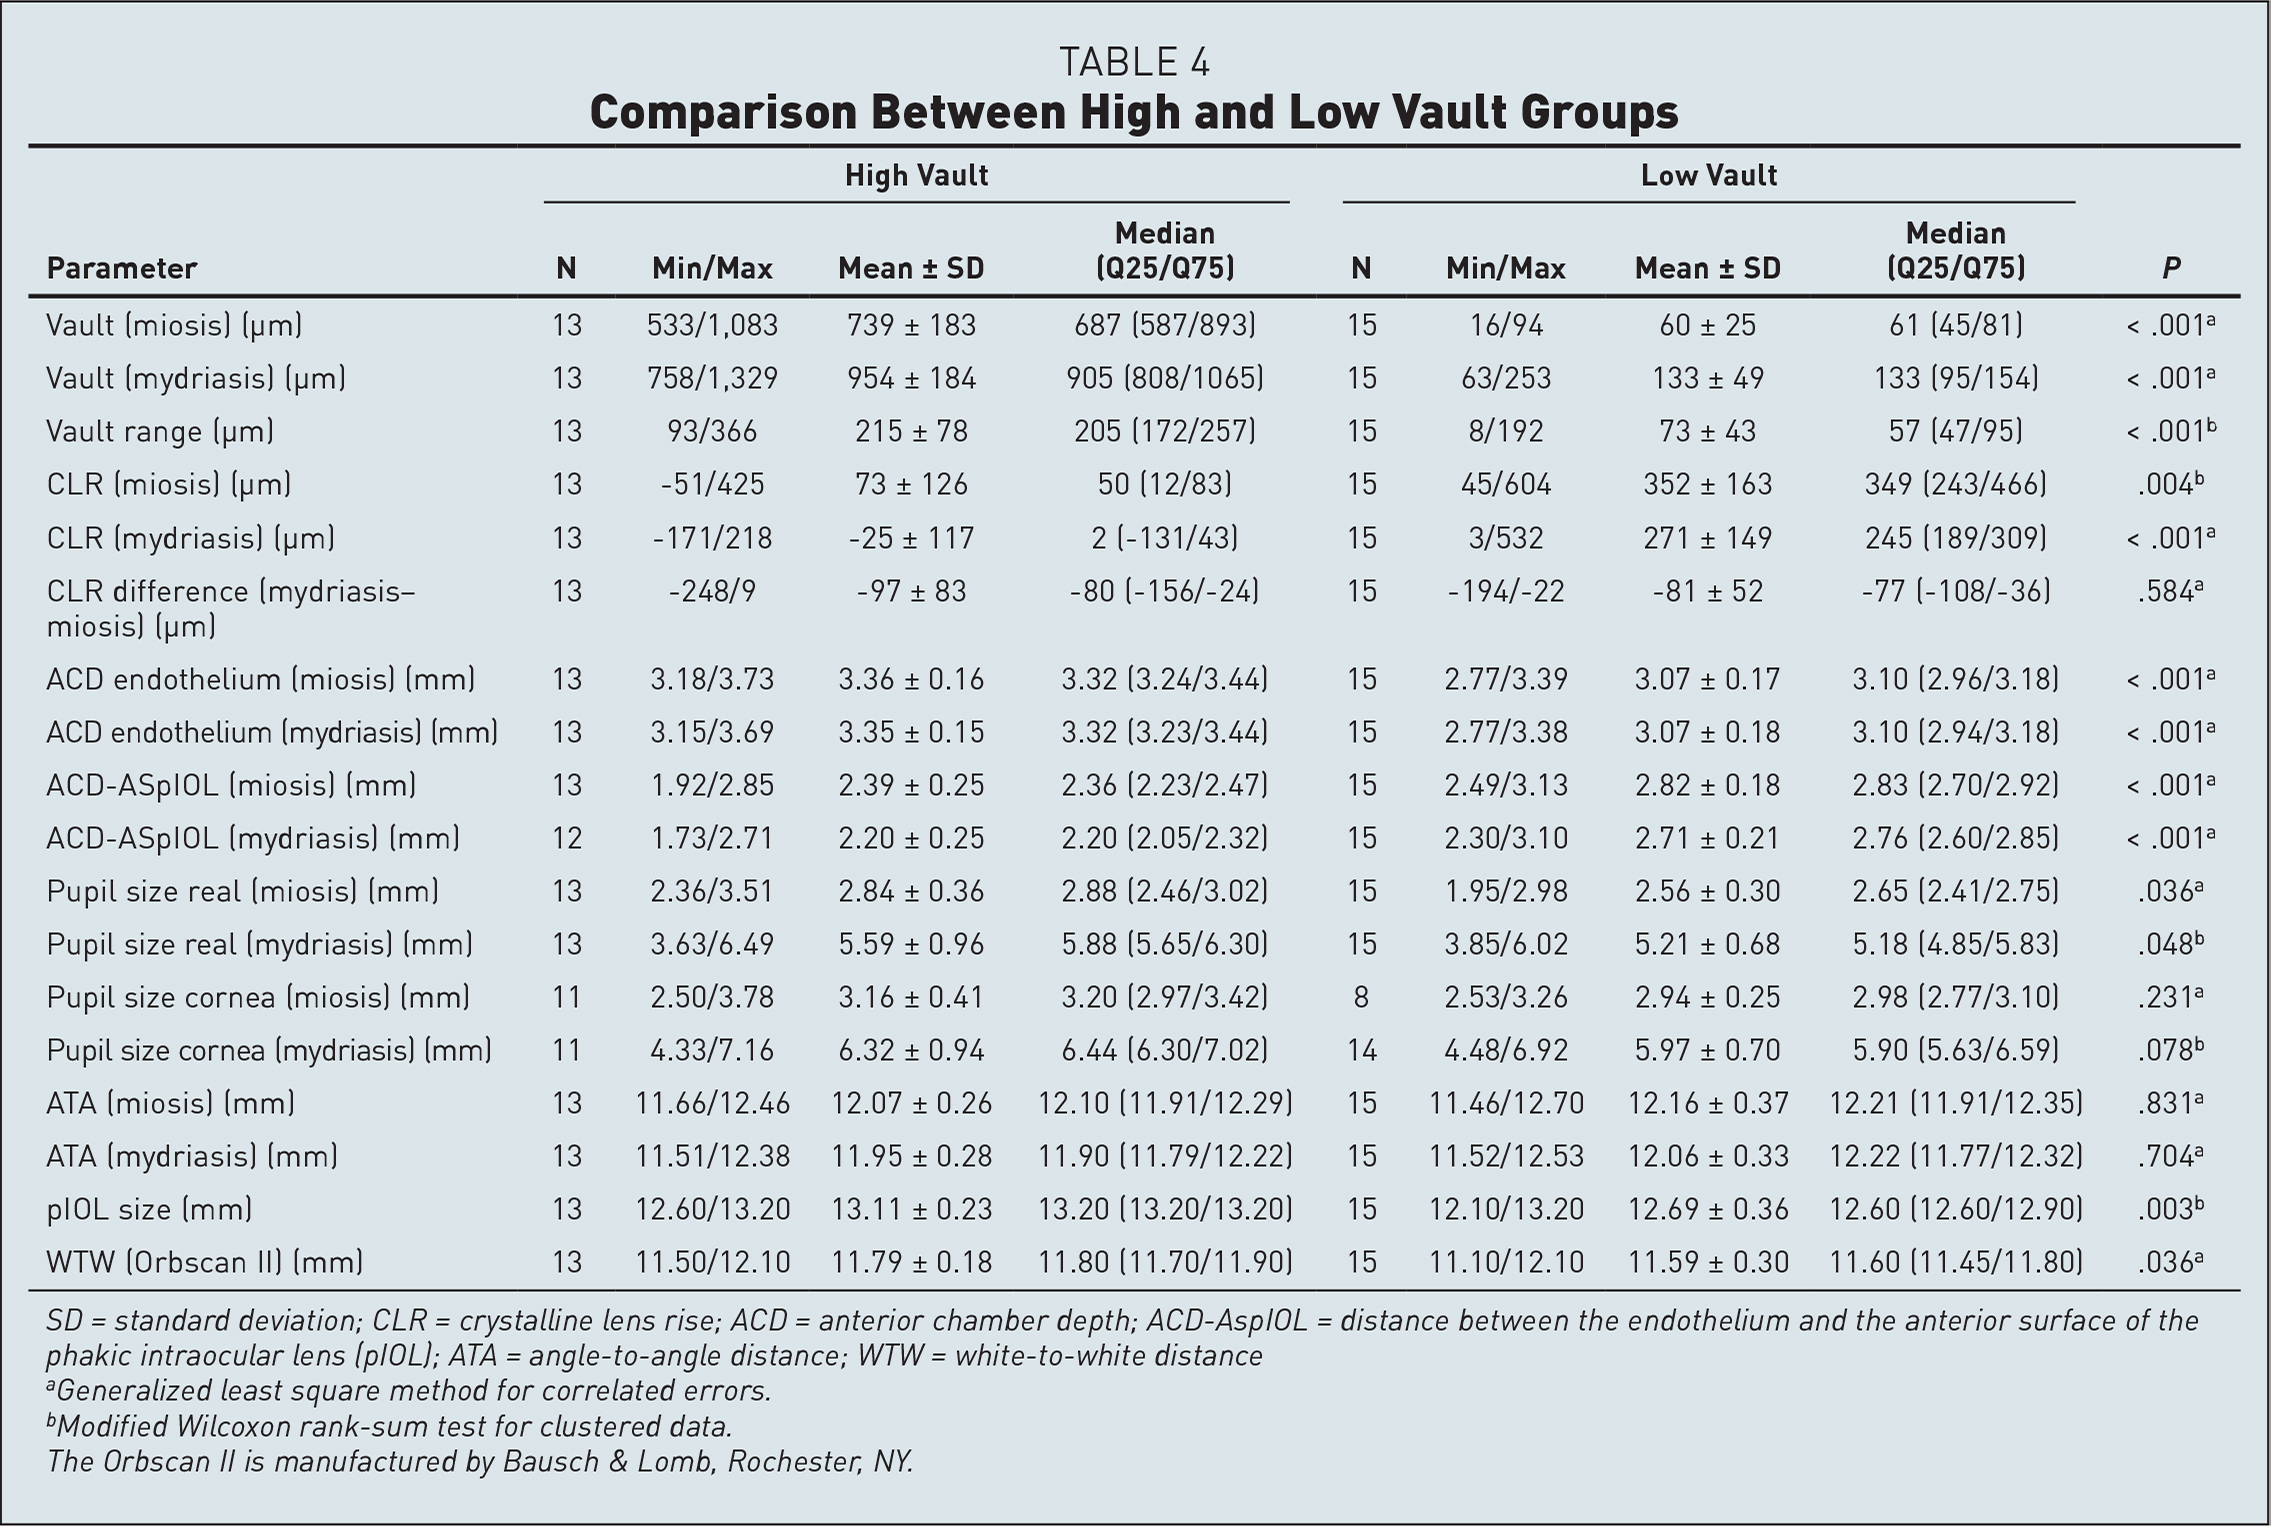 Comparison Between High and Low Vault Groups